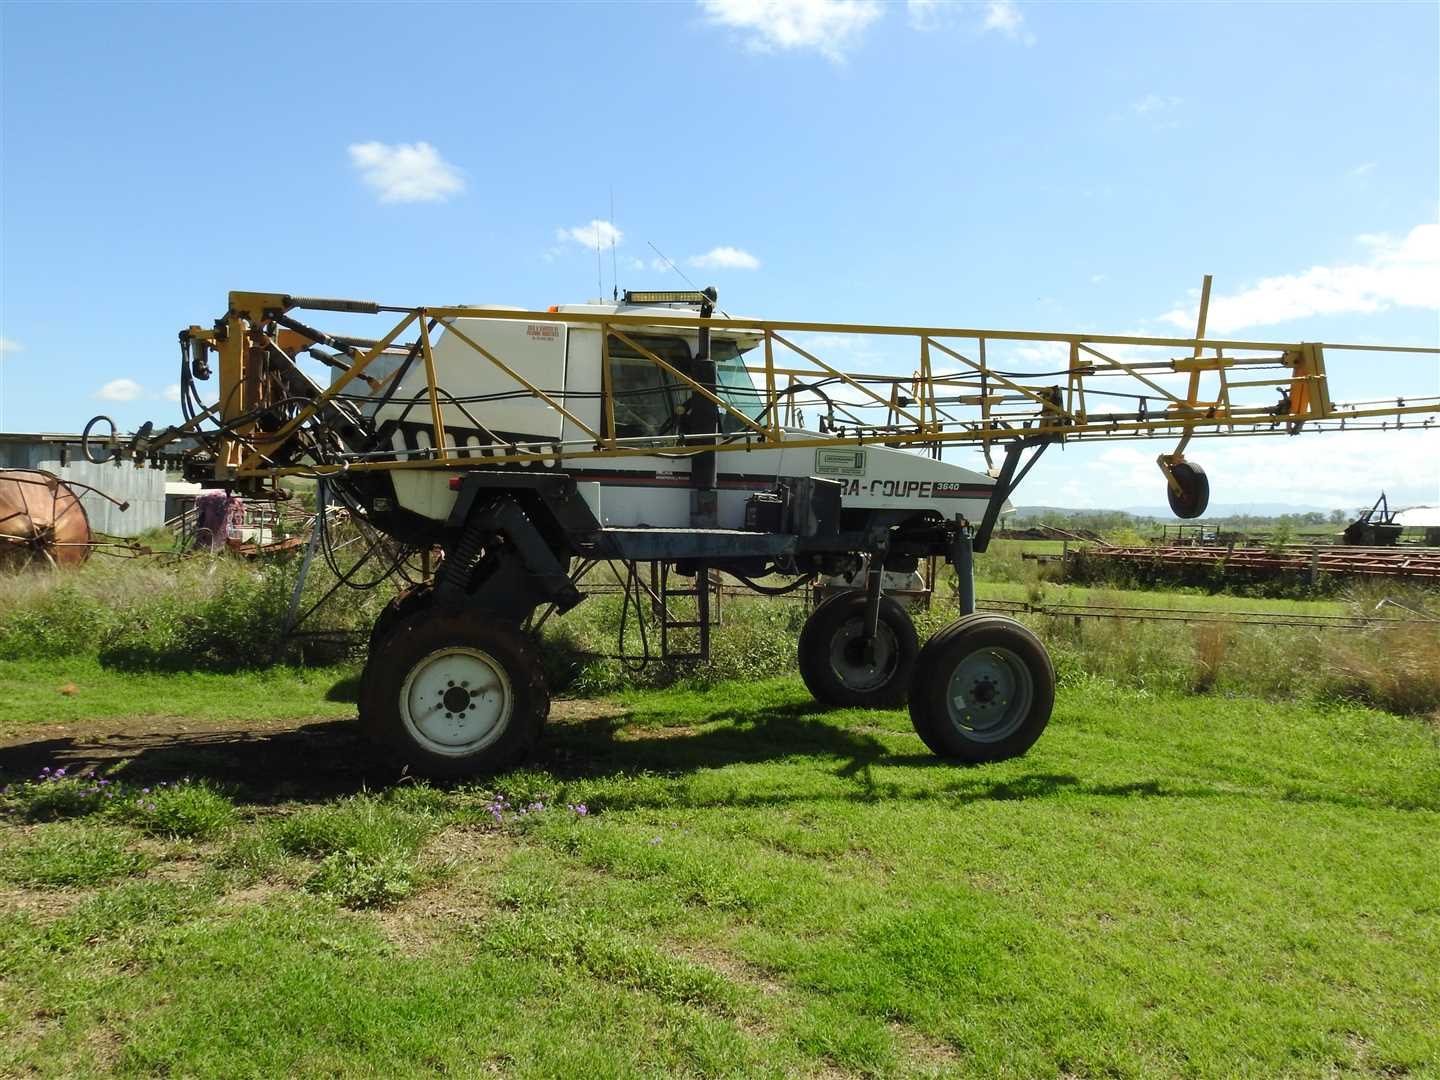 Spray Coupe  3640  s/n 207911444 24m boom, 1500litre spray tank,  approx 6000 hrs, main drive uni joints recently renewed.